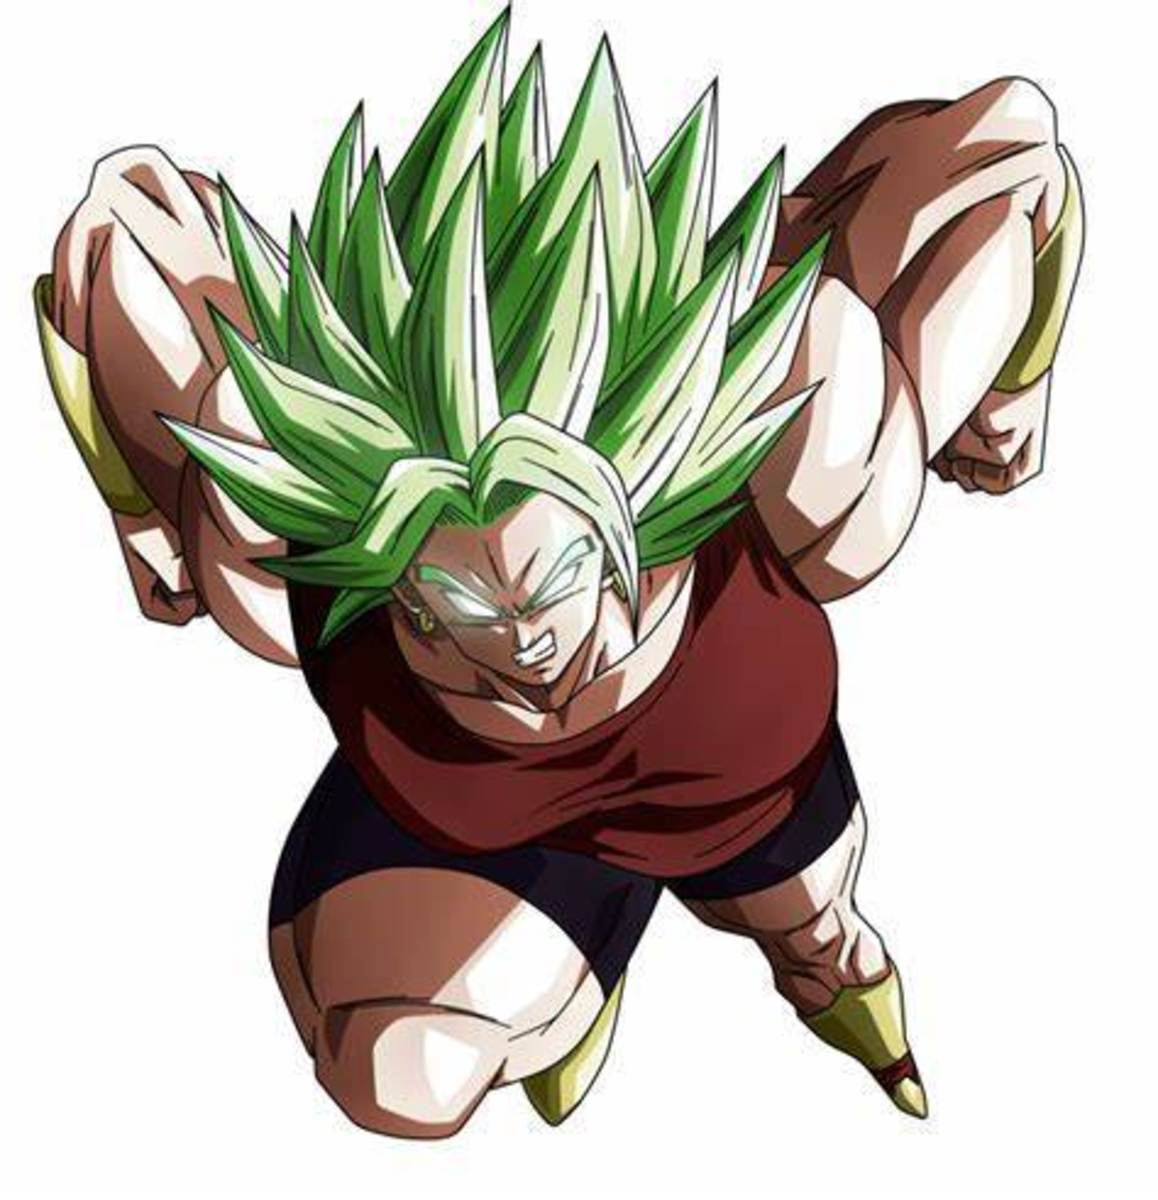 Kale (Legendary Super Saiyan)